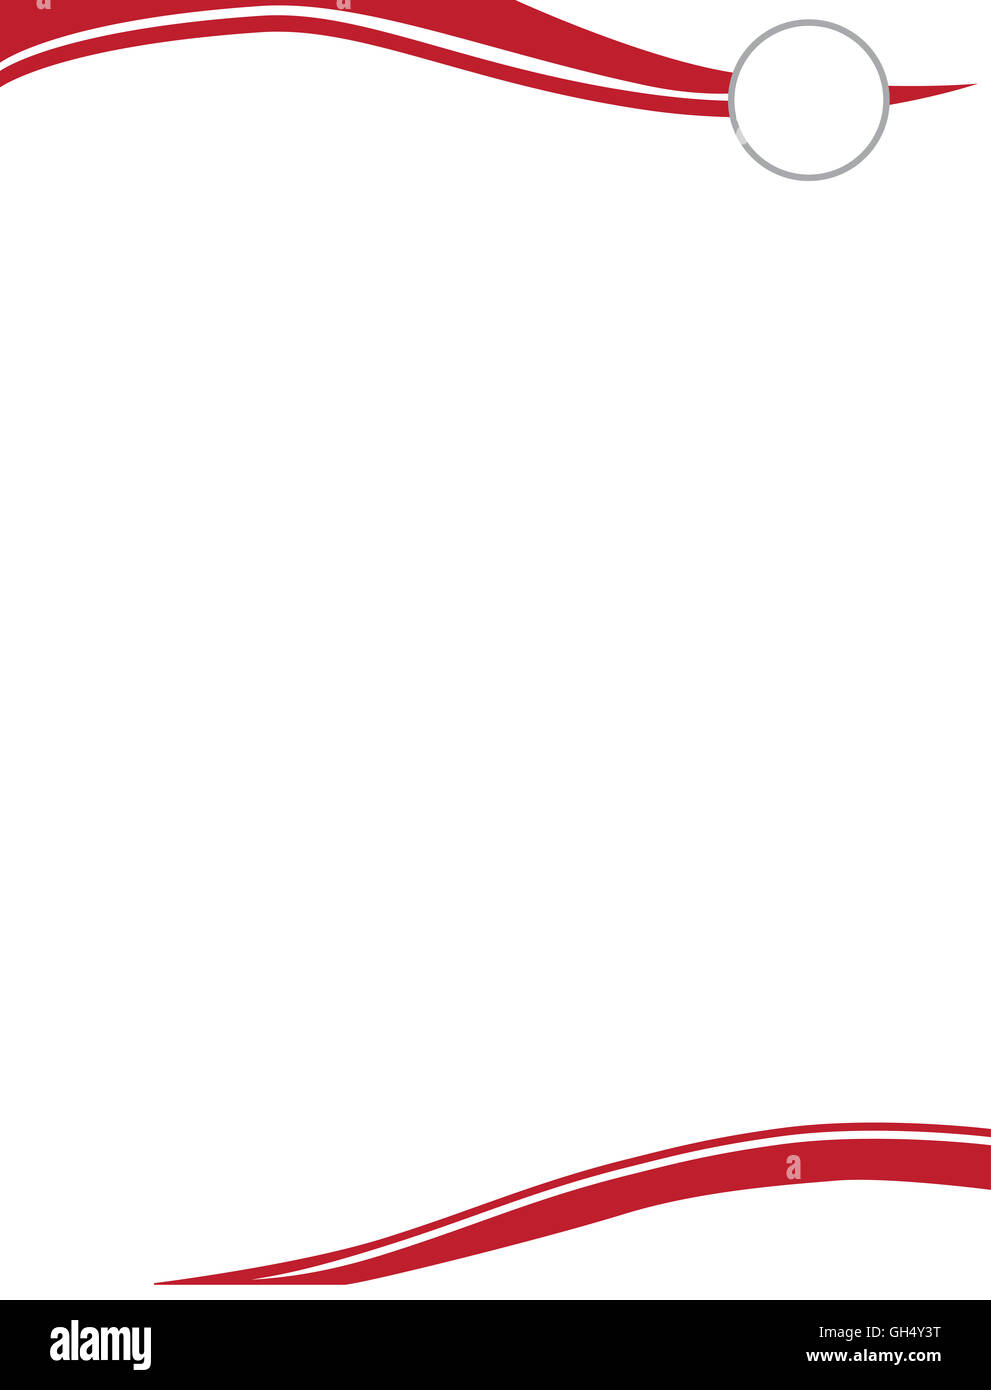 Red Swirl Letterhead Template with Circle for Logo - Stock Image